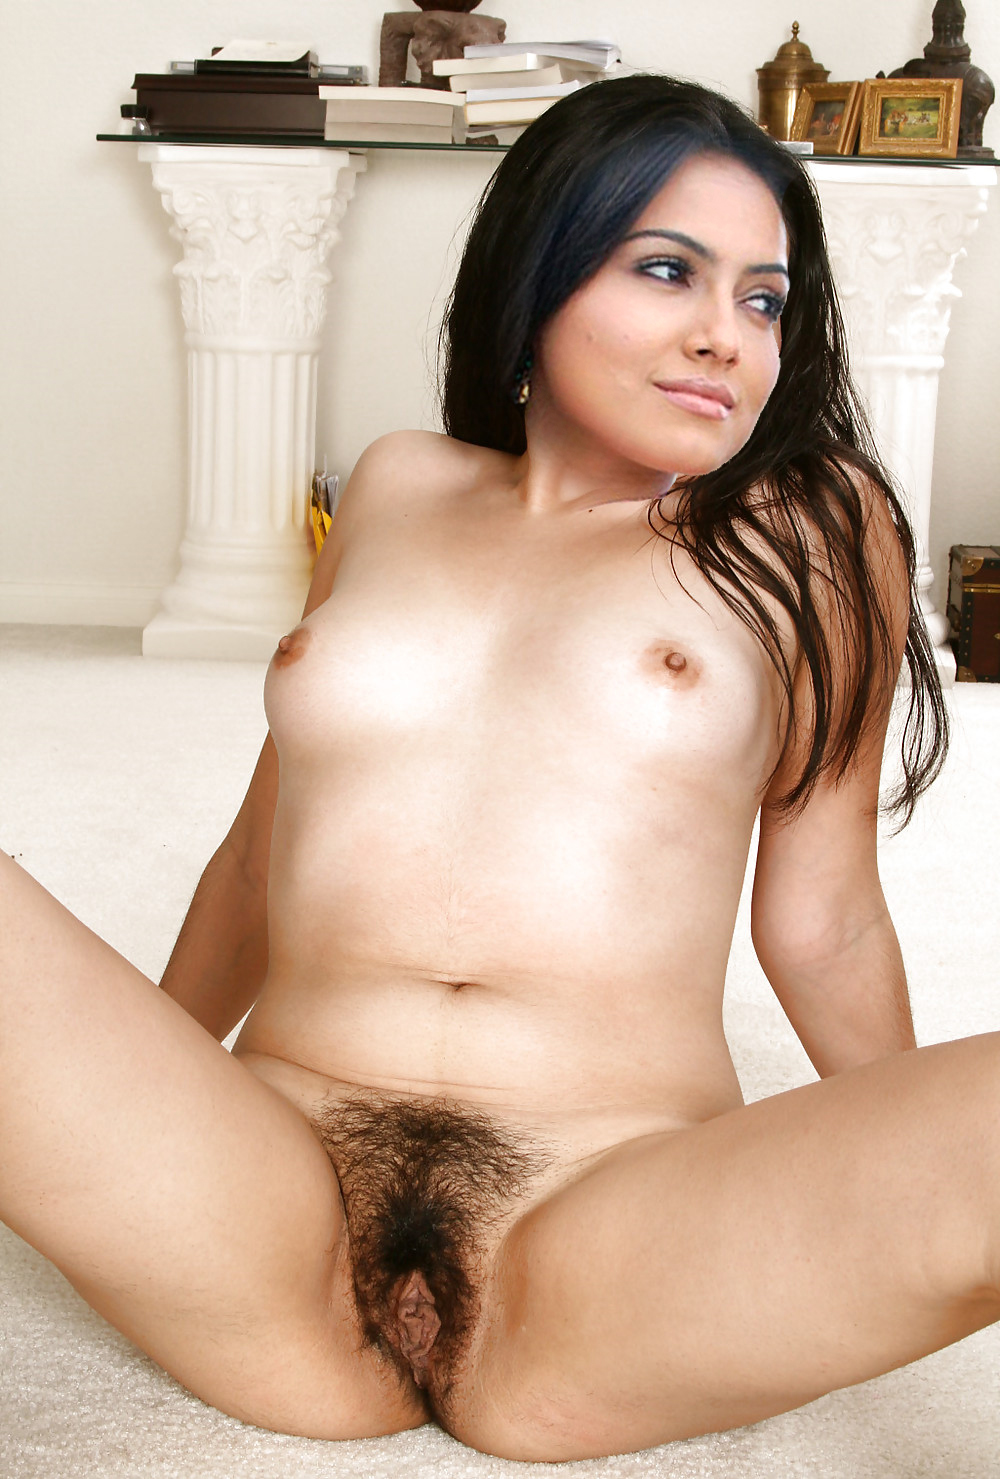 Sana khan hard fuking xxx